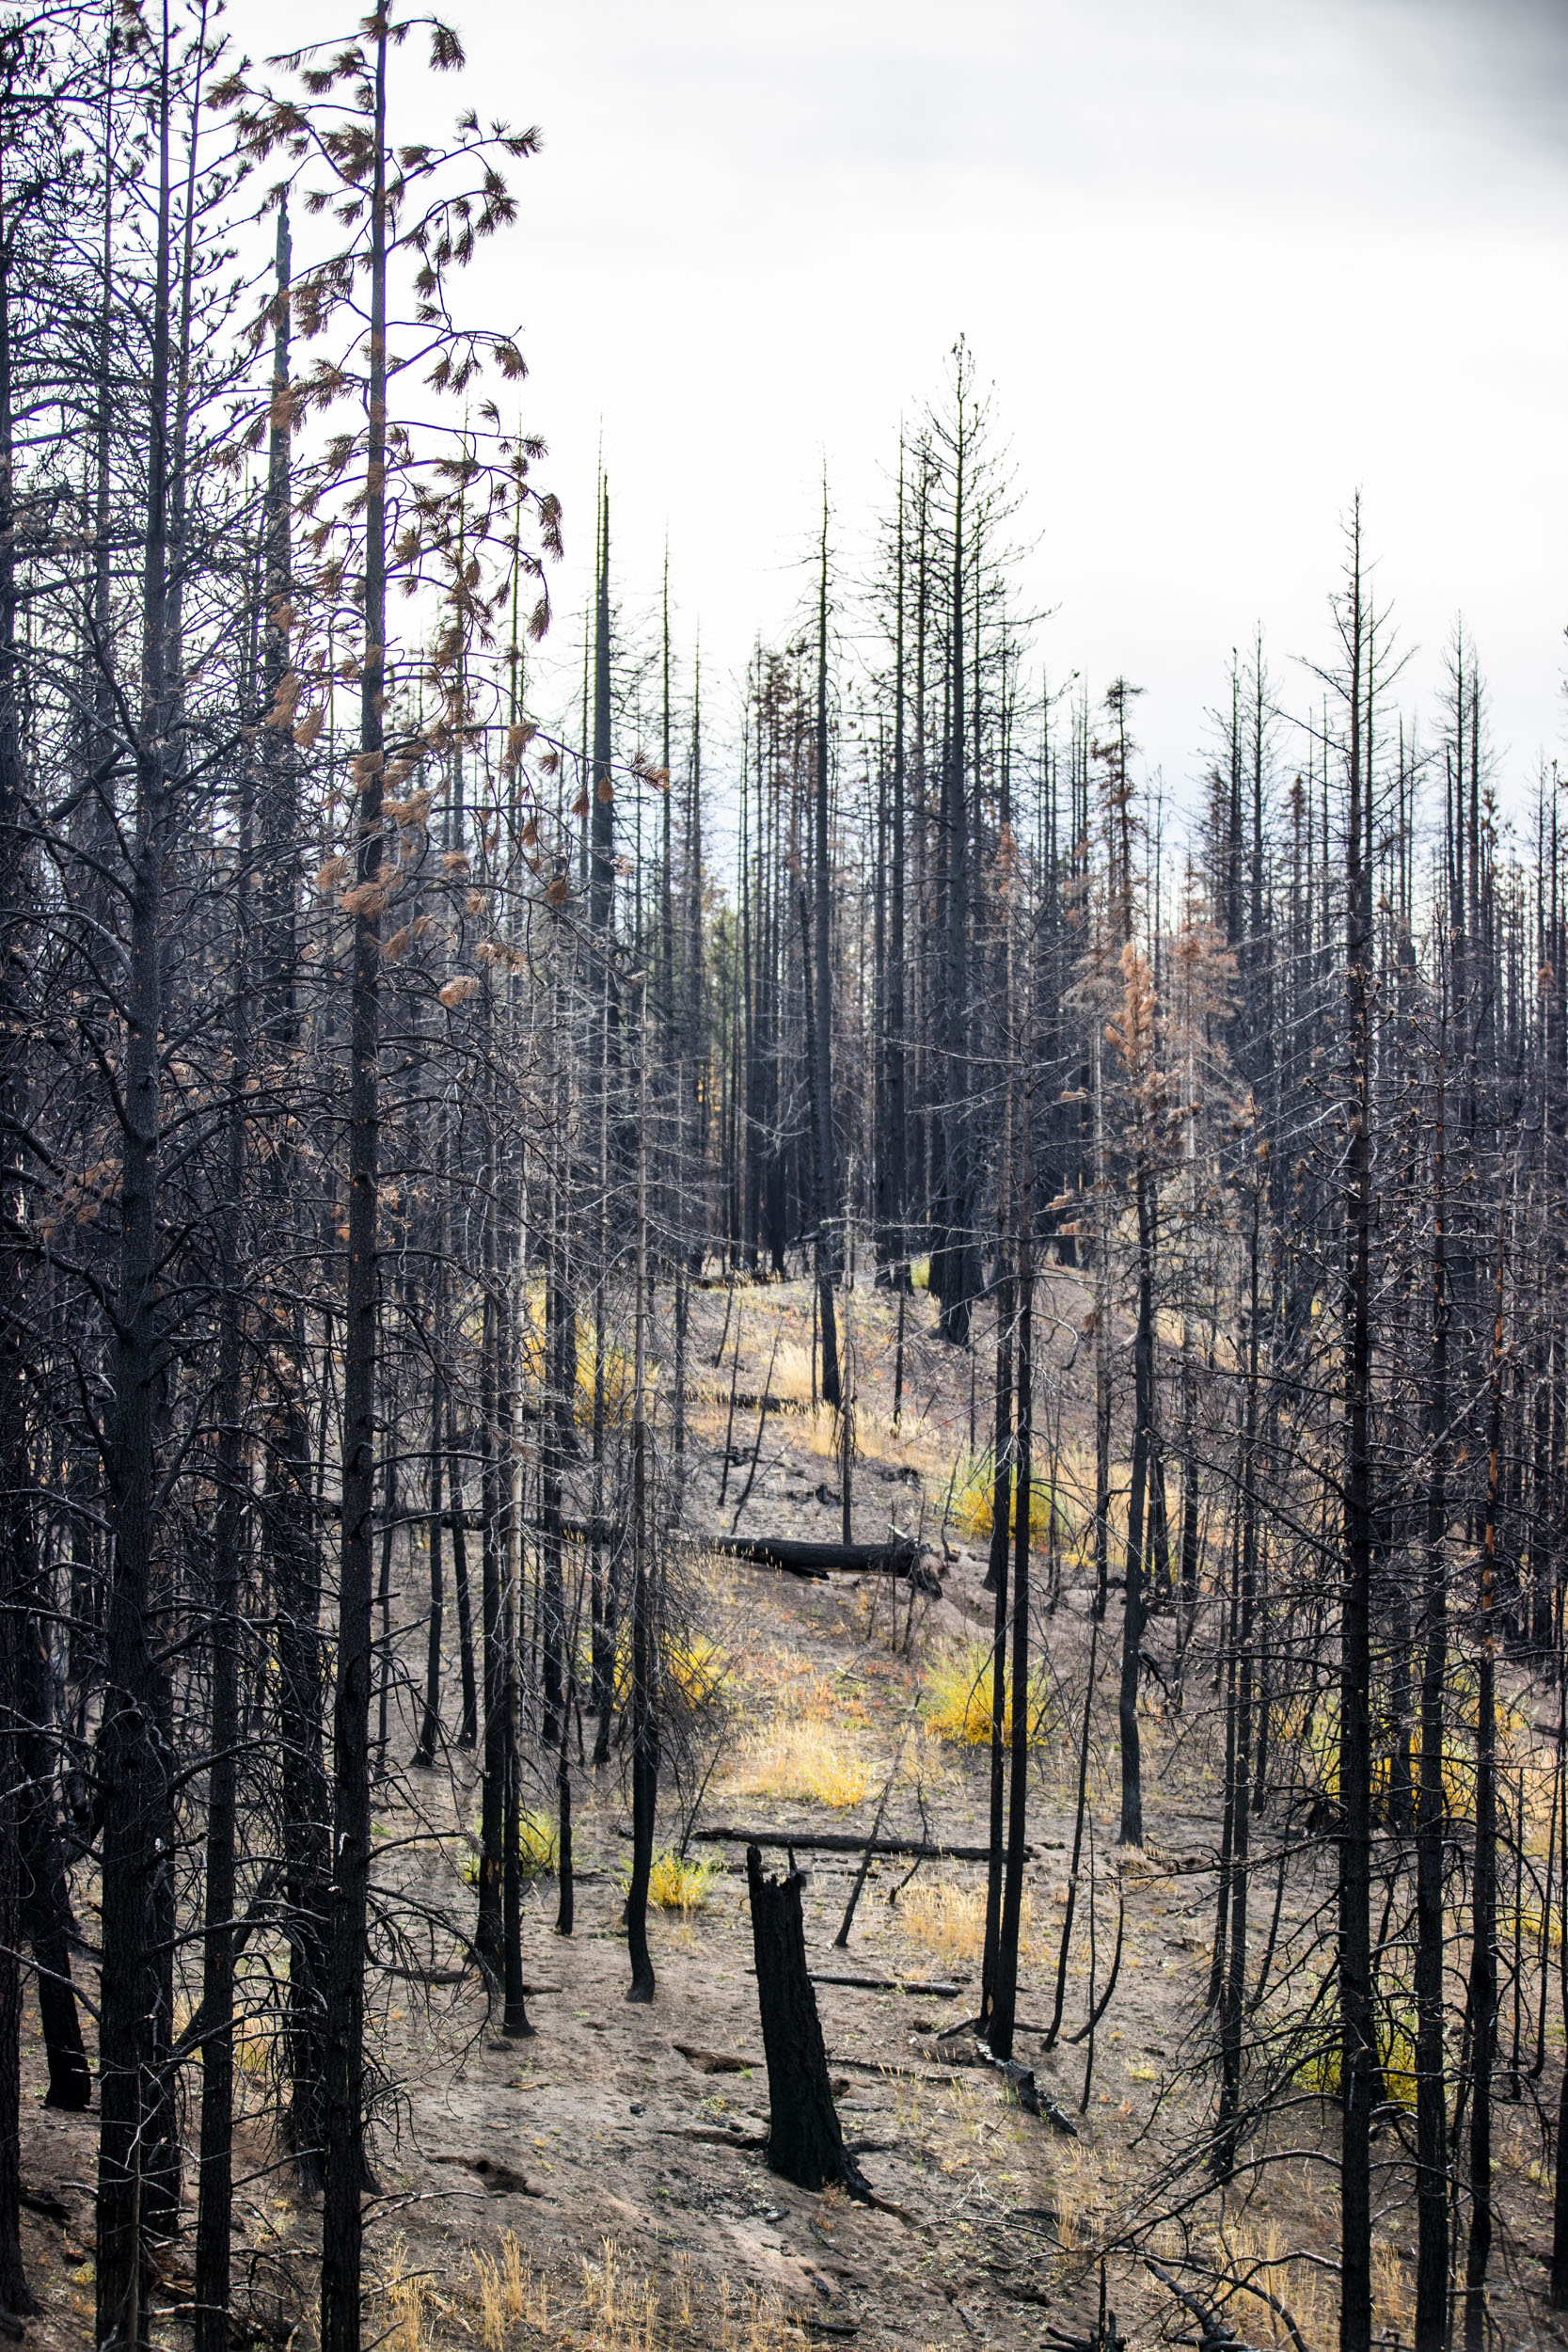 The site of the 2017 Jolley Mountain Fire is pictured on Wednesday, Oct. 24, 2018. The Department of Natural Resources is implementing a forest health treatment plan which uses dying forest for cross laminated timber. Franz says this plan will also help keep the cost of wildfire suppression down and make forests more resilient to wildfires. (Photo by Dorothy Edwards/Crosscut)